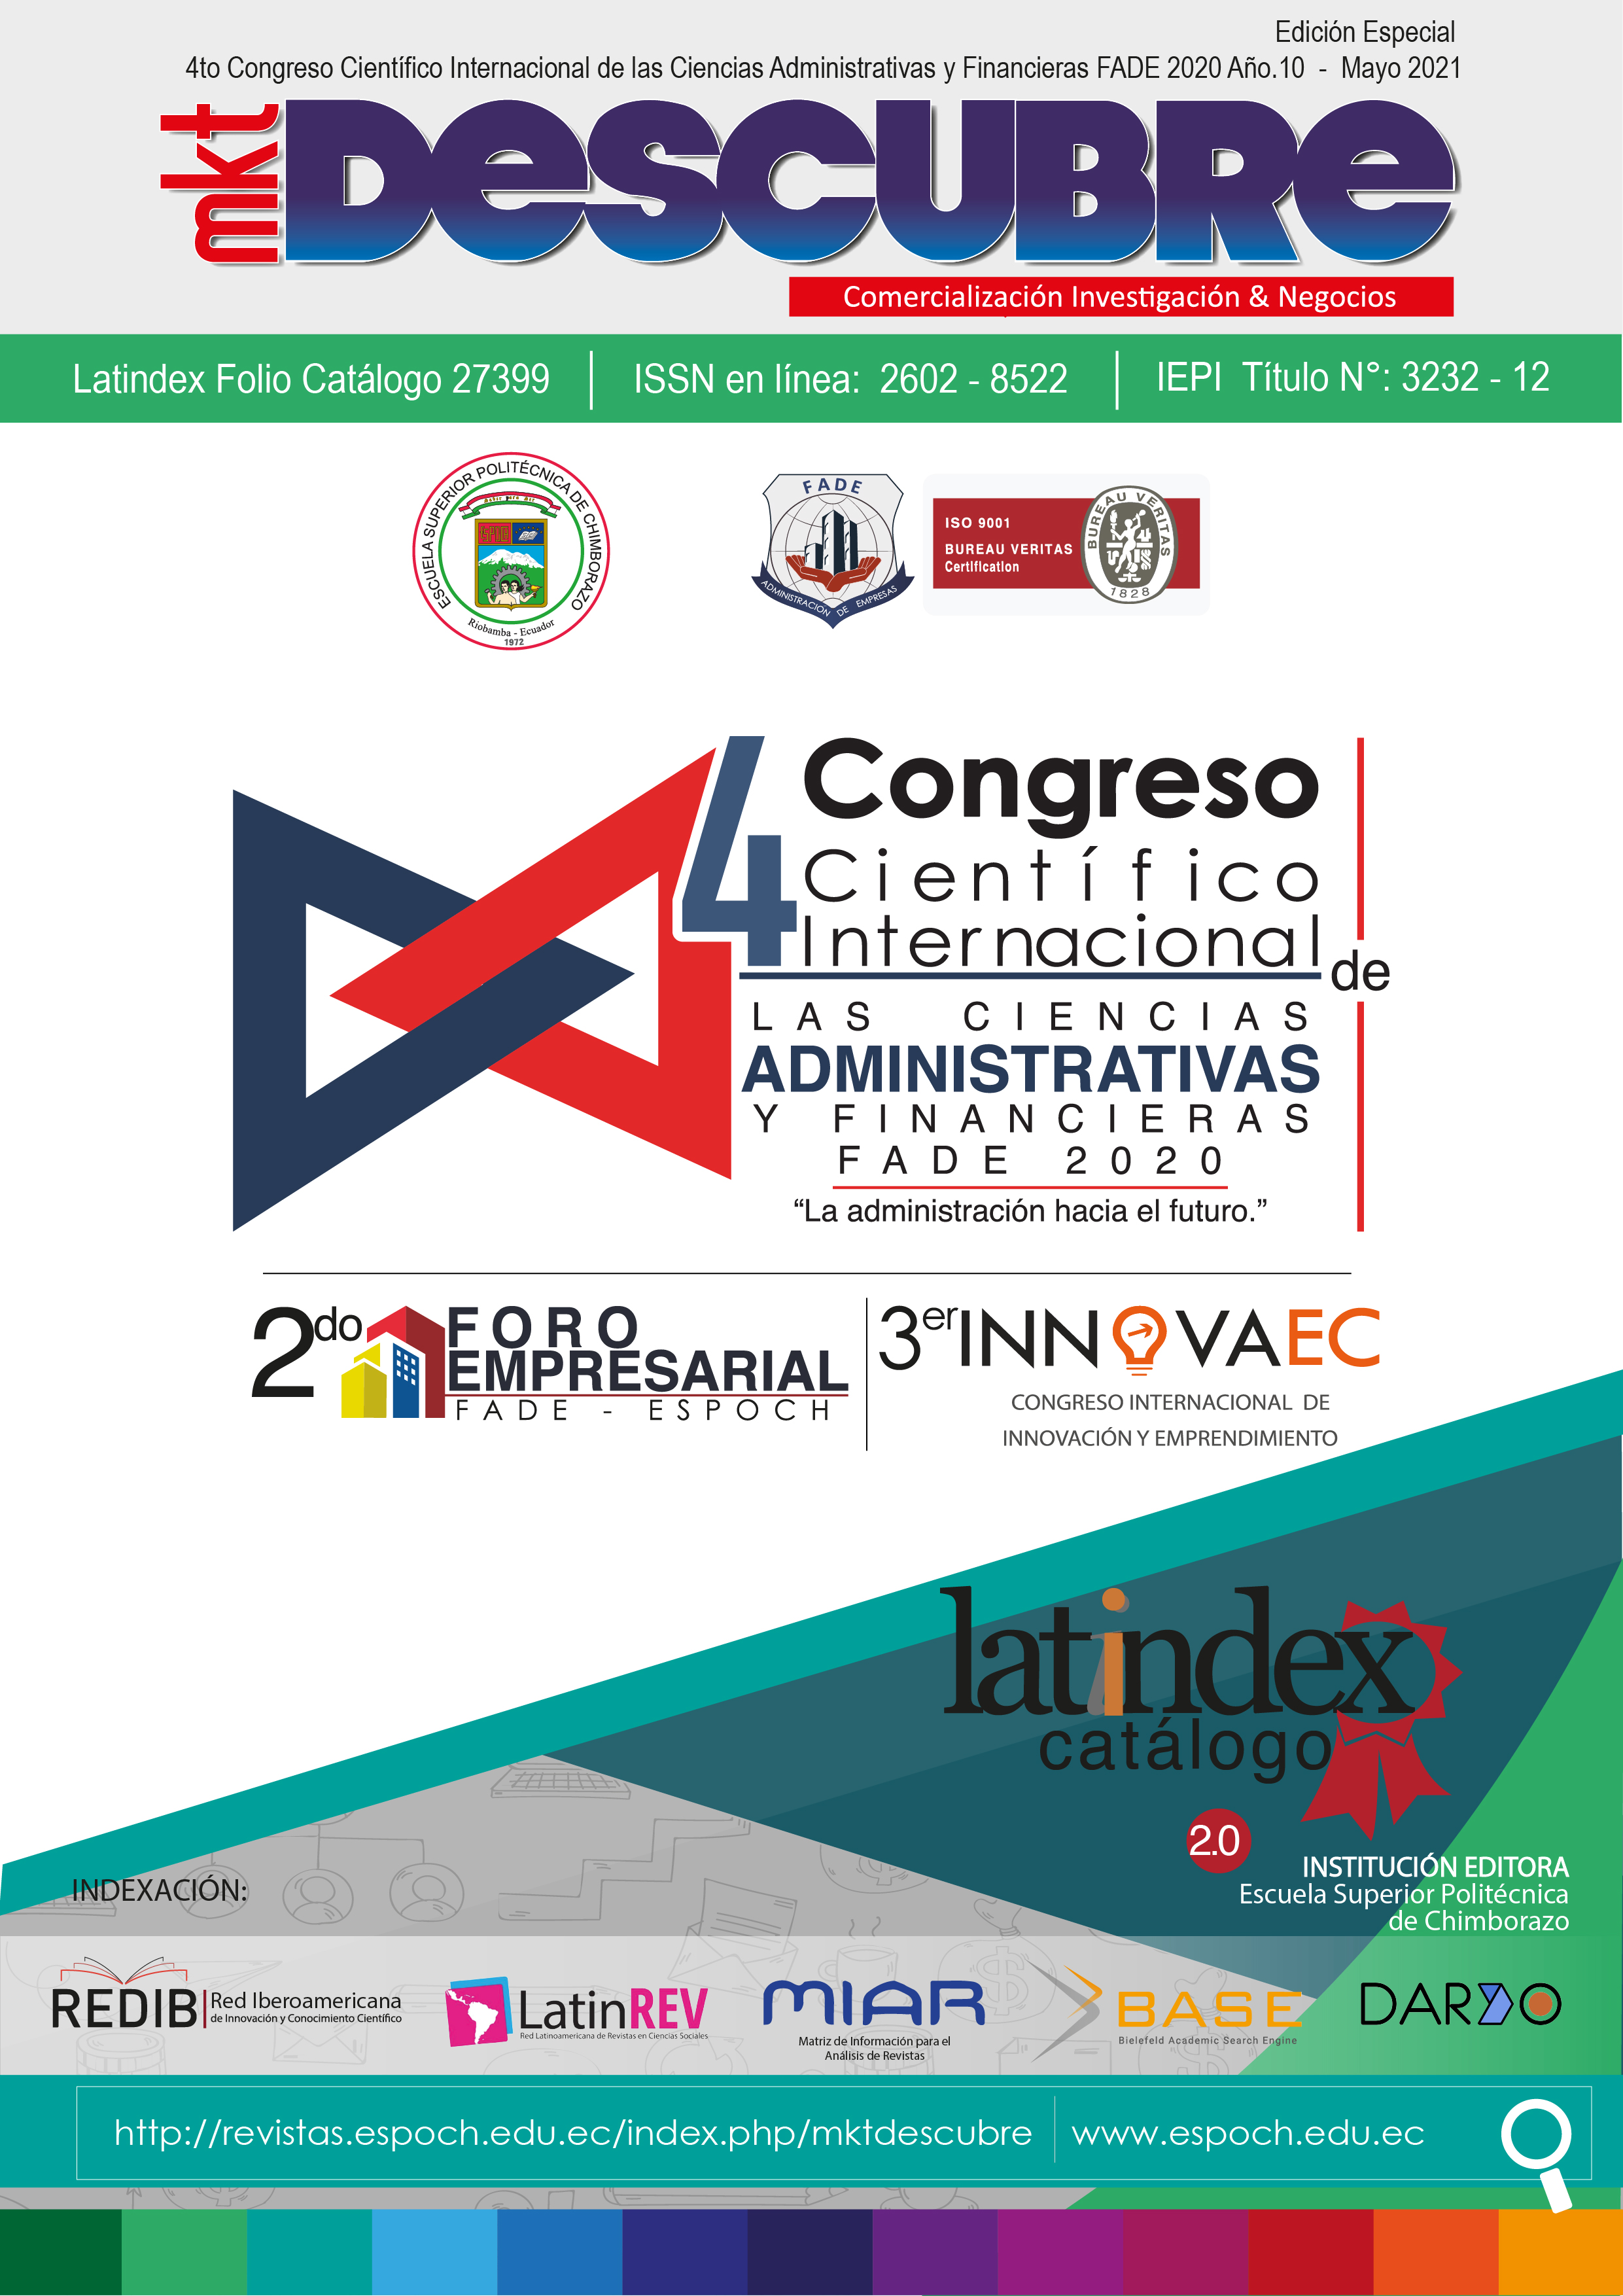 Memories 4th International Scientific Congress of Administrative and Financial Sciences FADE 2020